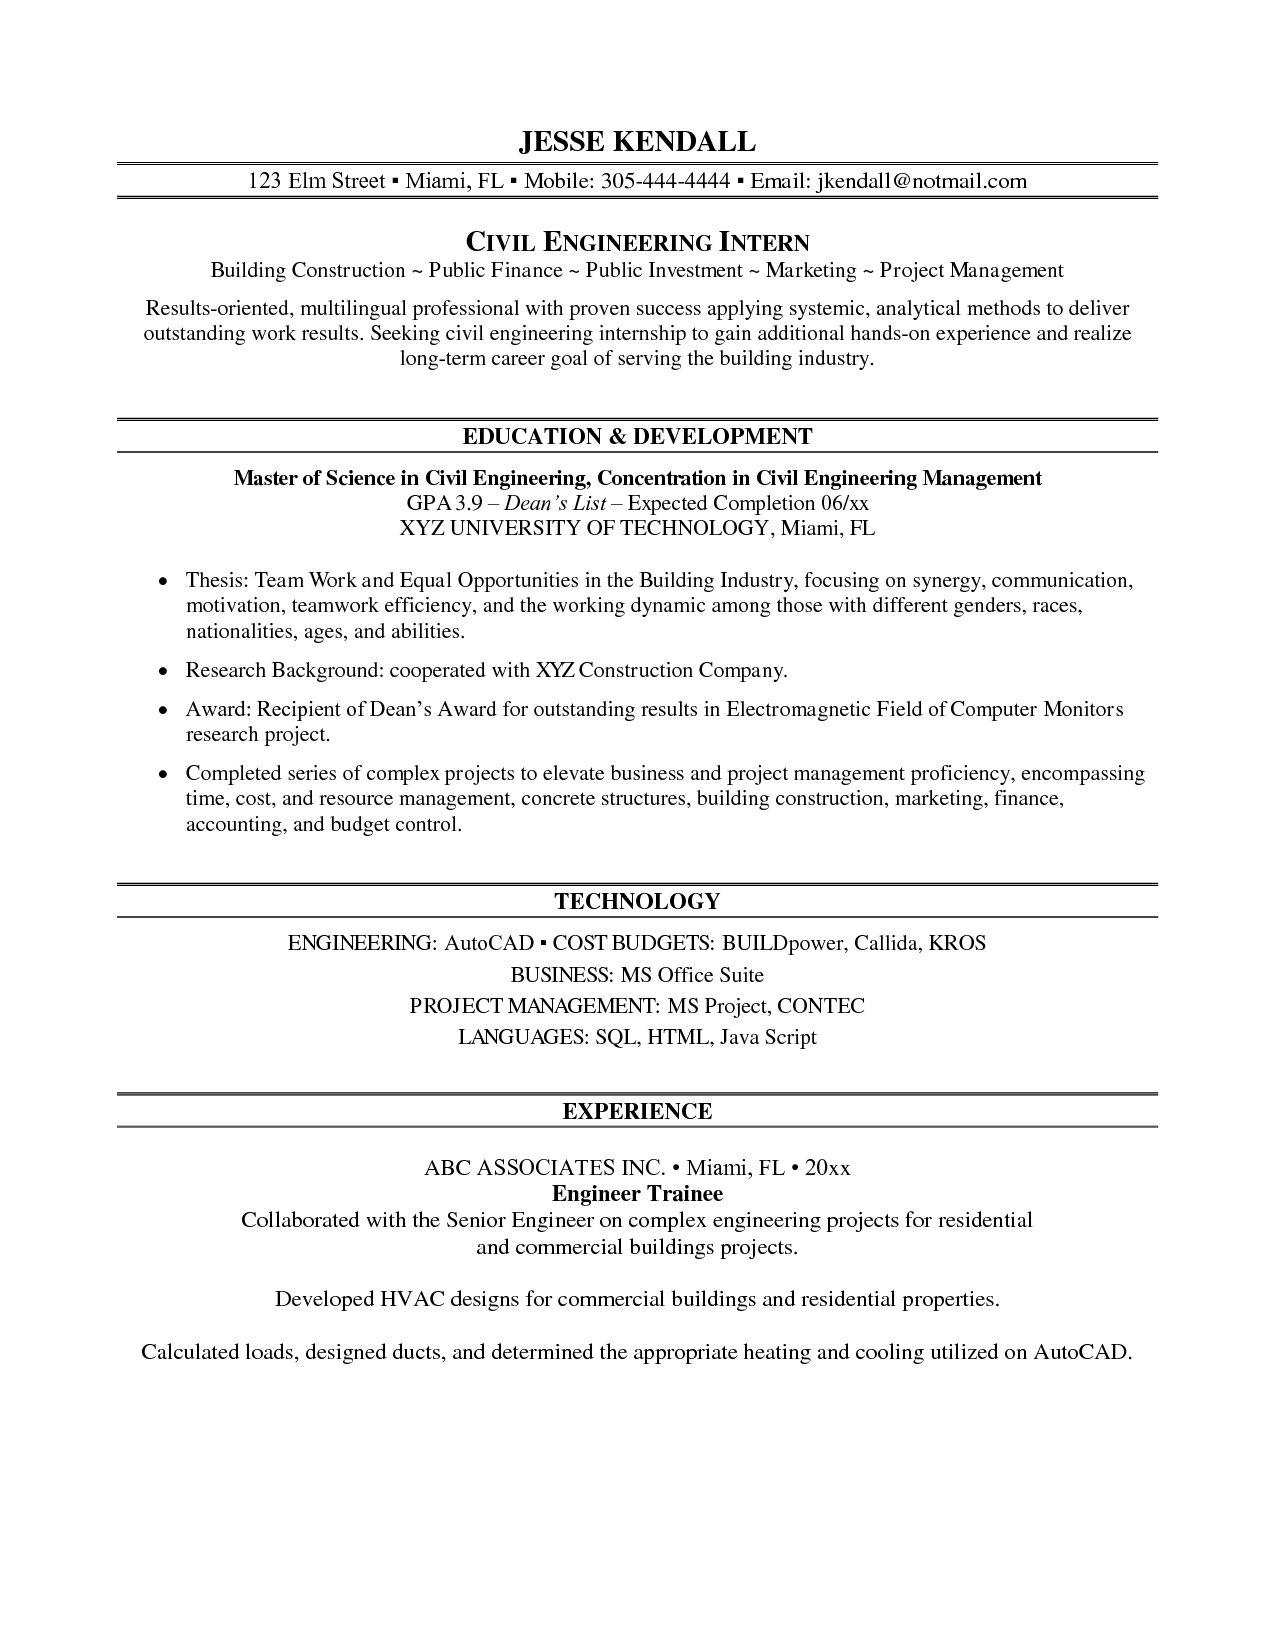 Internship Resume Best Template Collection resume